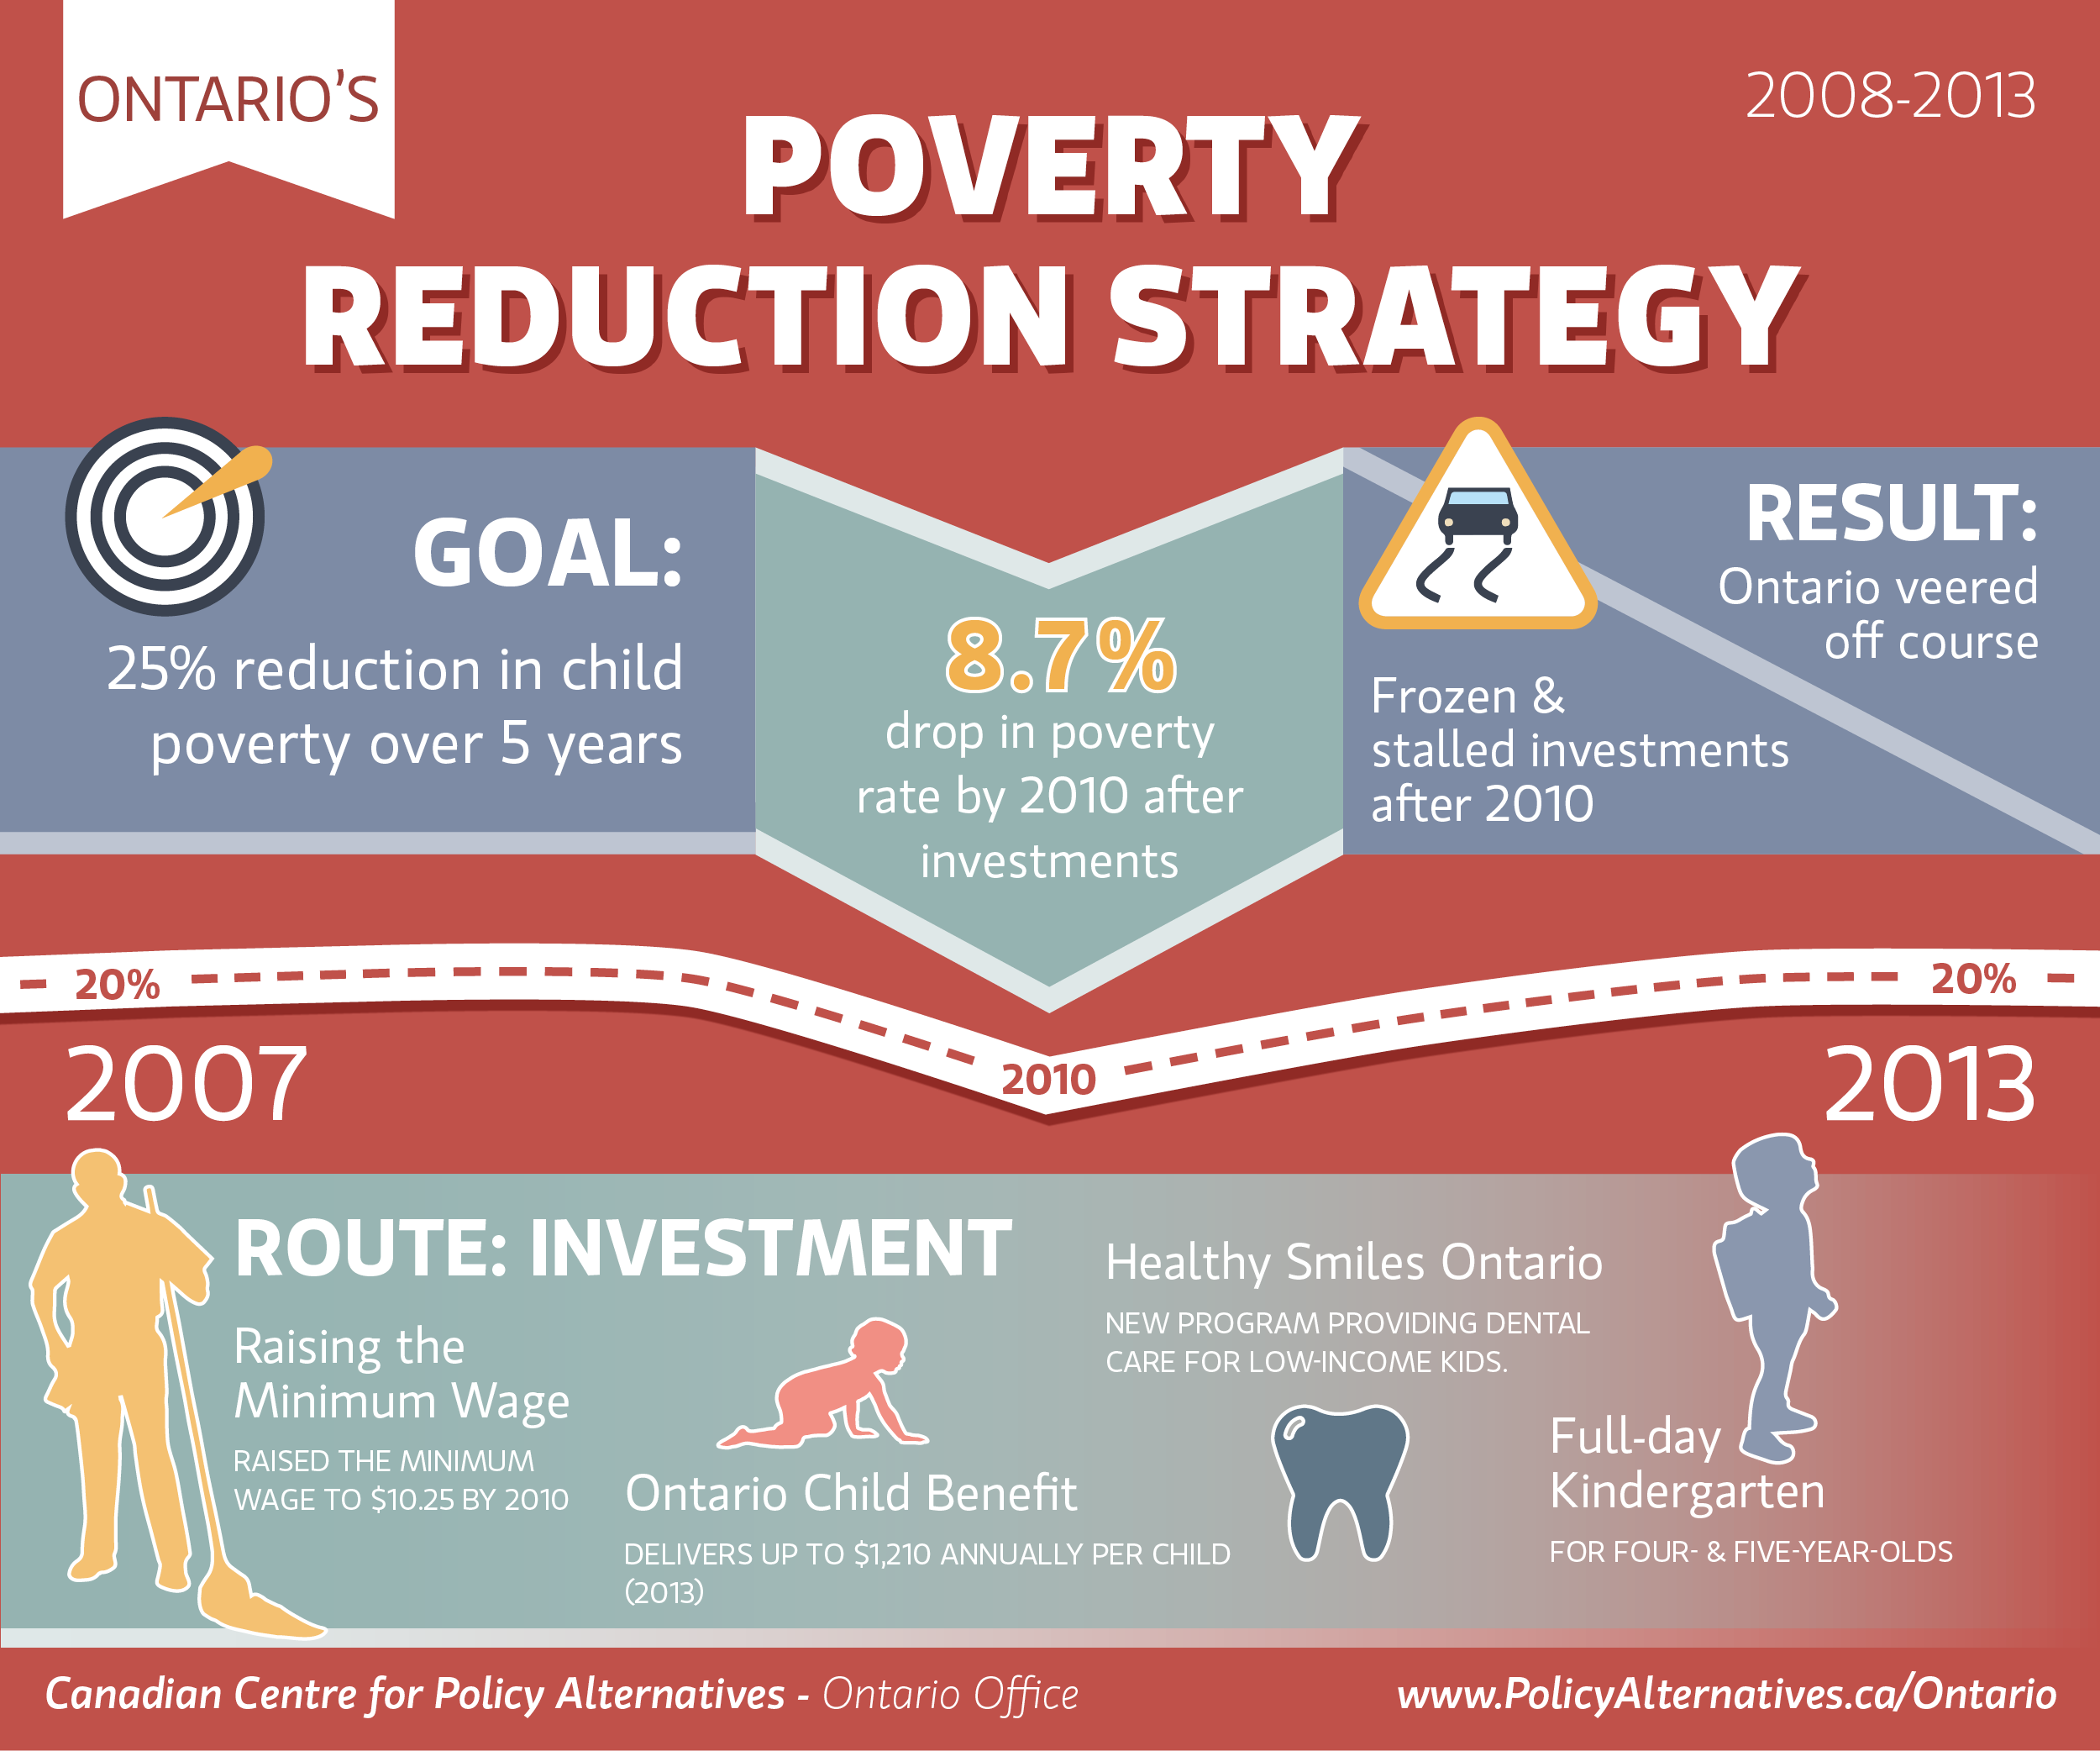 Ontario's poverty reduction strategy infographic